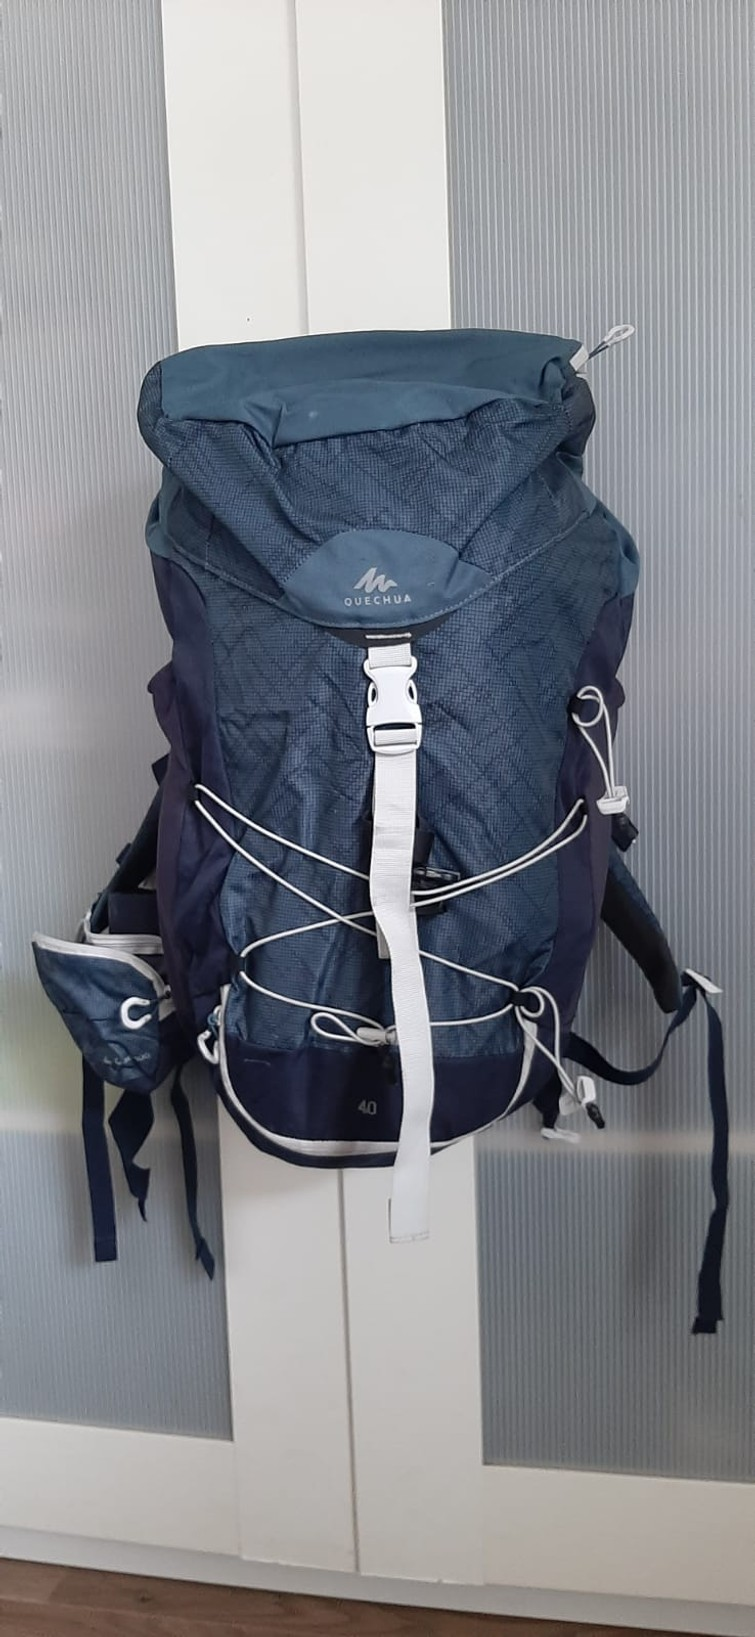 Sexy backpack 40L (handbagage)